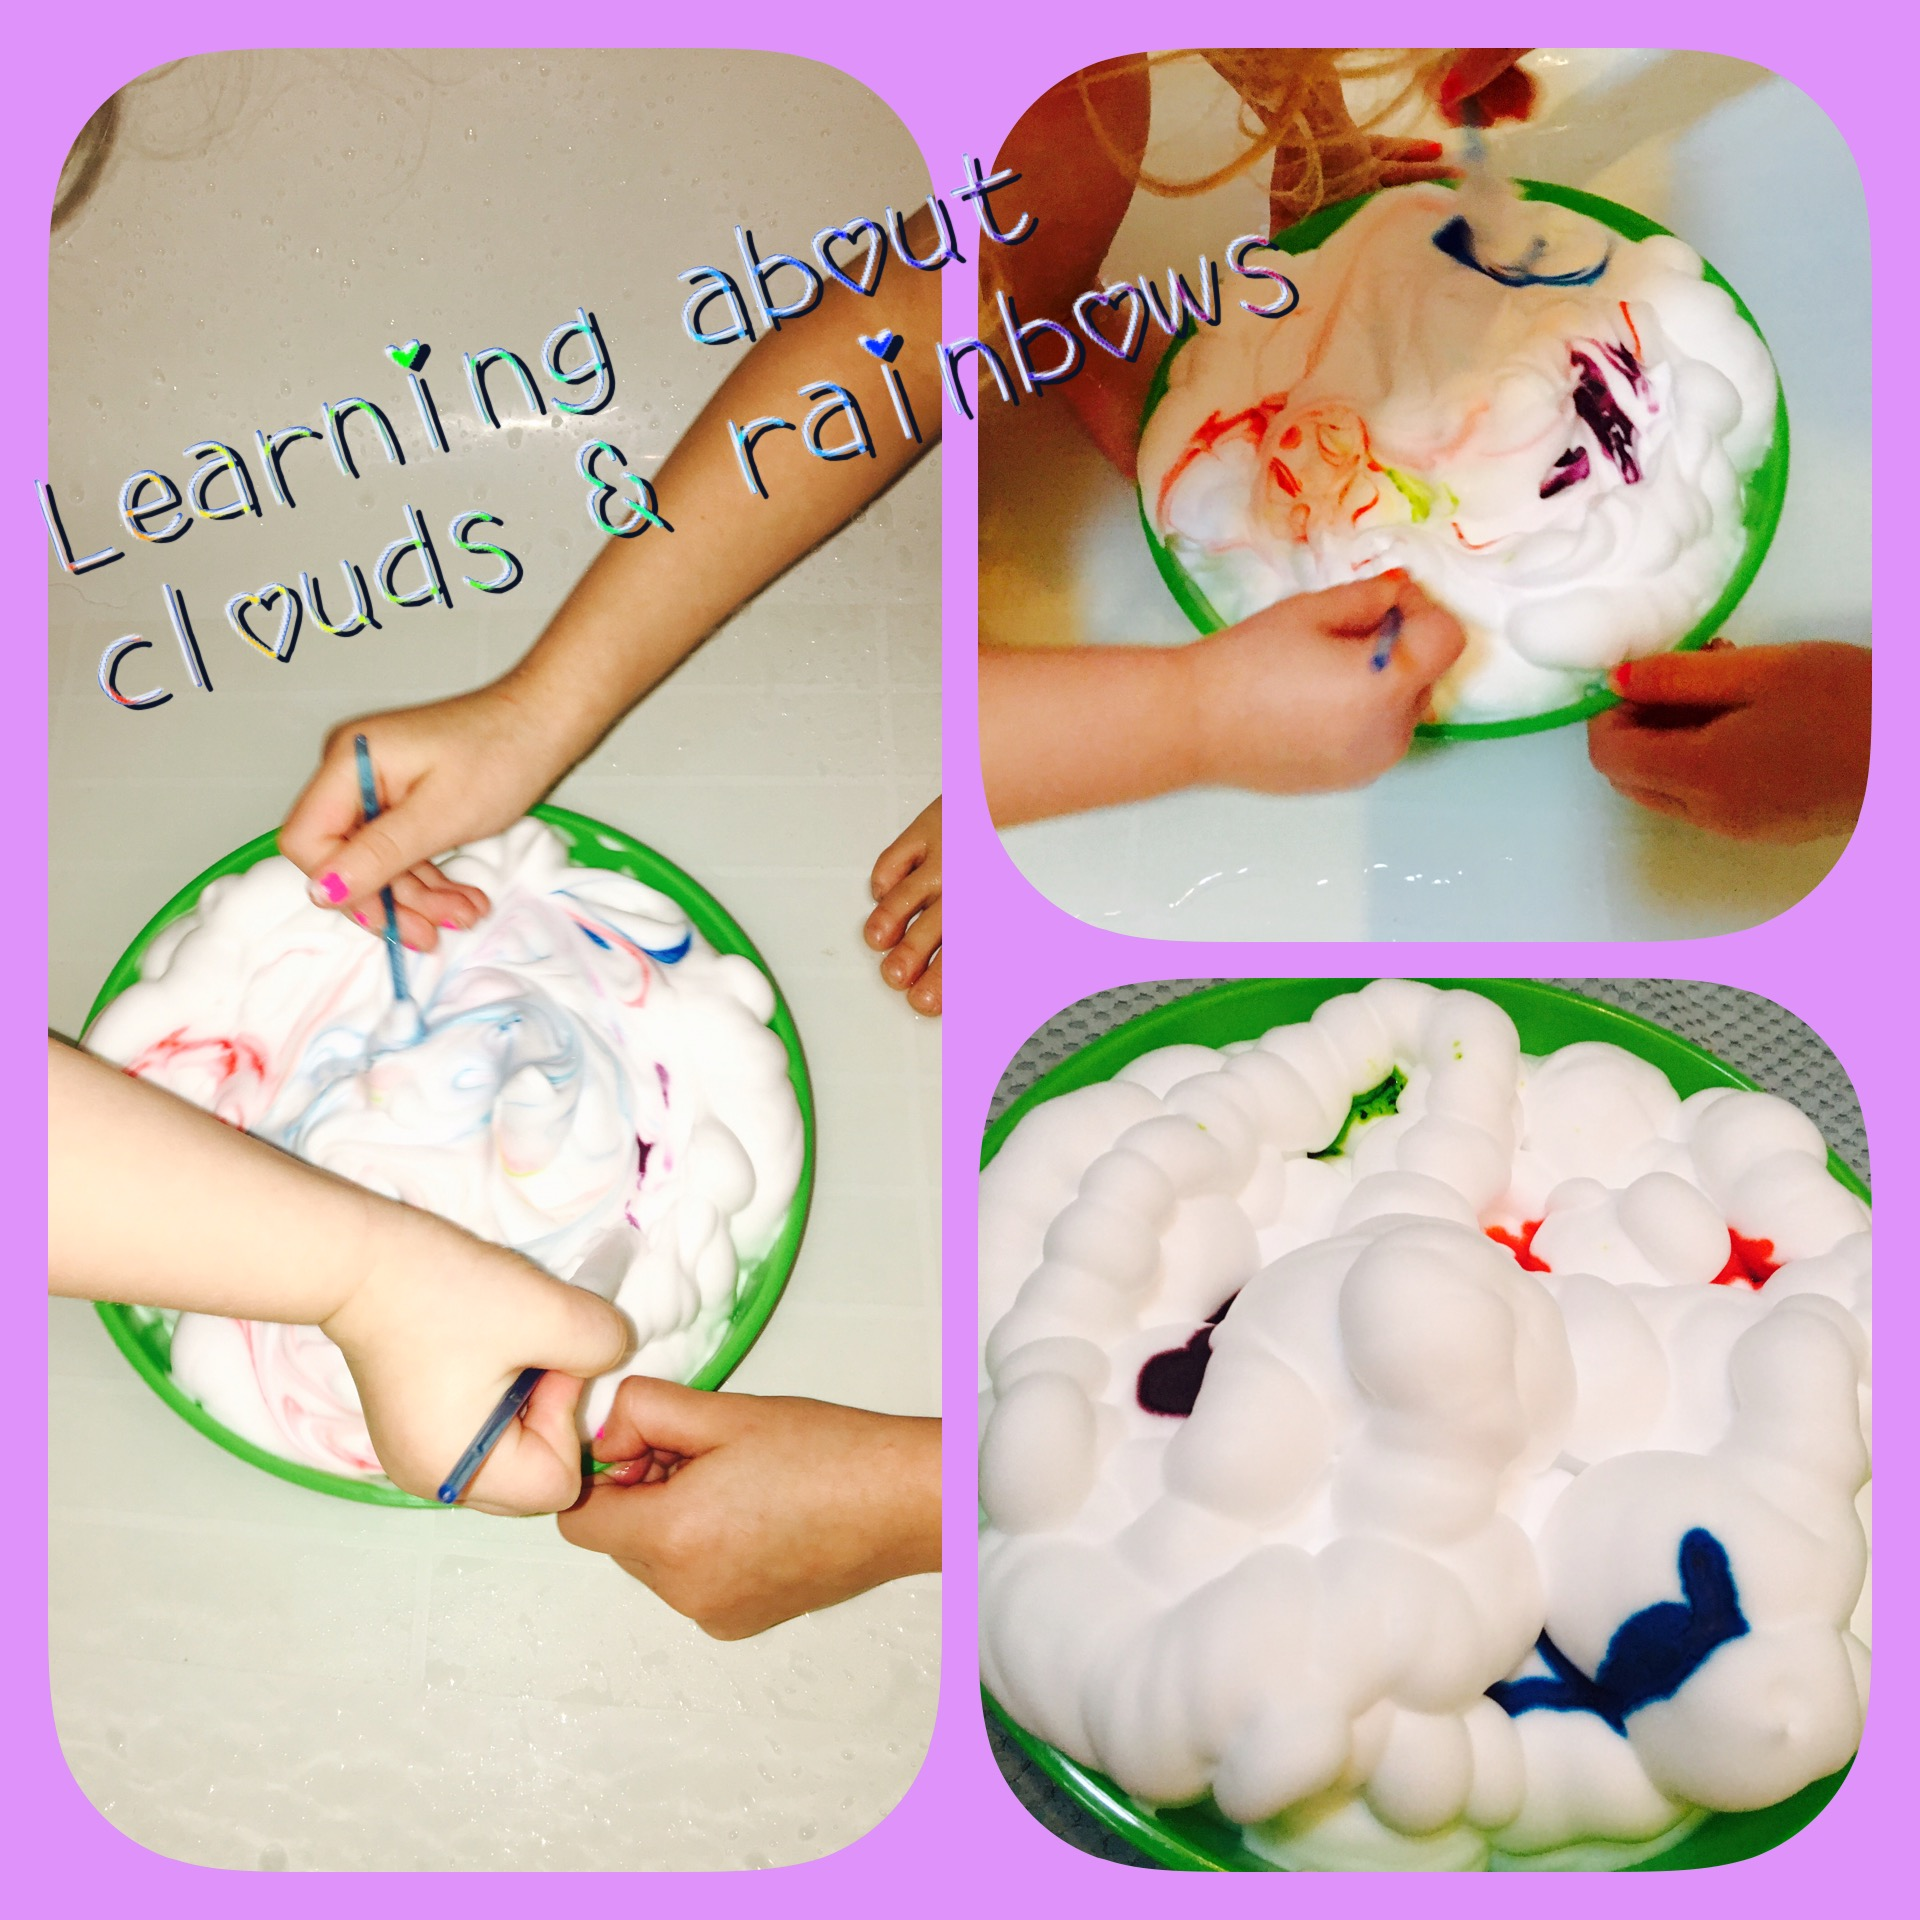 Learning about clouds and rainbows is fun when you use shaving cream. Easy clean-up: let them play in the bathtub then wash!